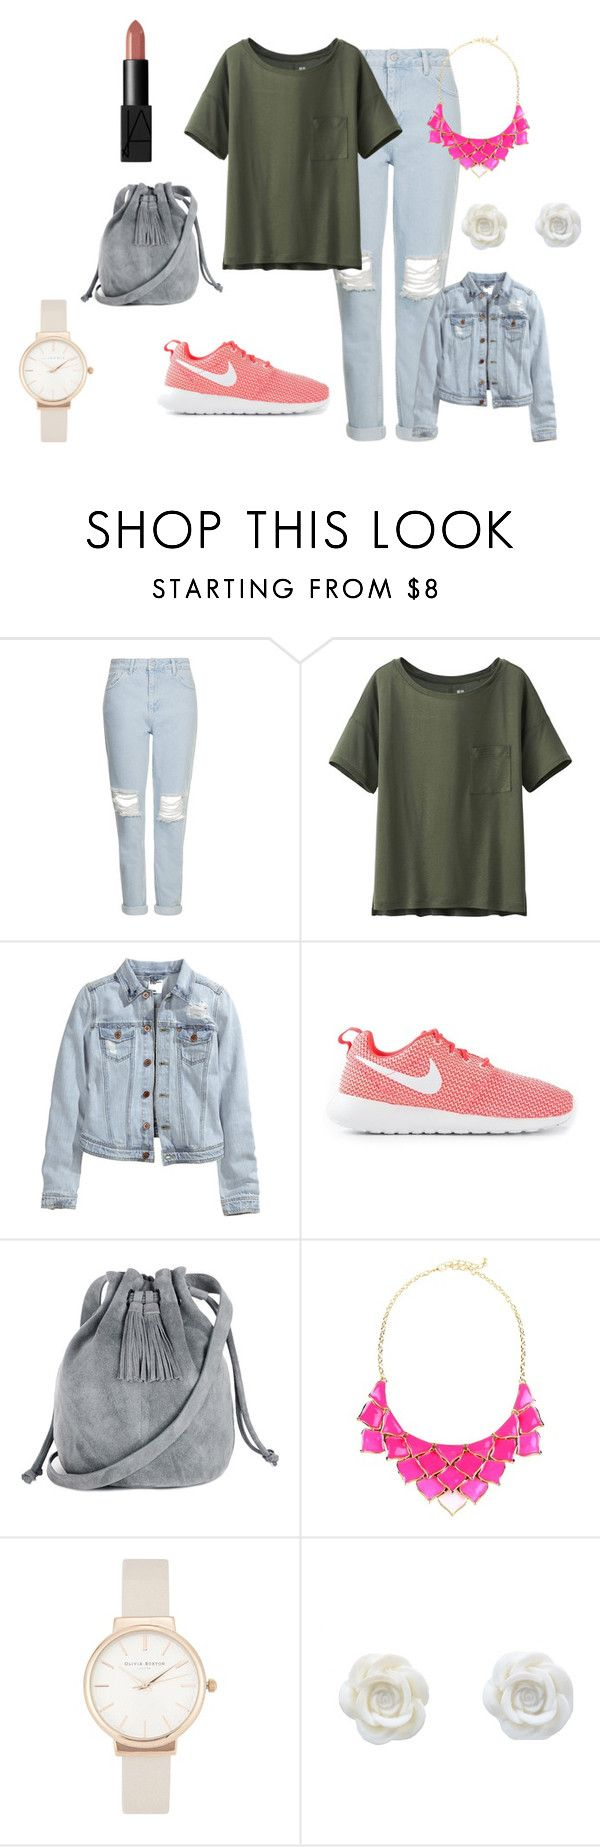 """wiosna 2015"" by dagusia112 on Polyvore featuring moda, Topshop, Uniqlo, H&M, NIKE, Warehouse, George J. Love, Olivia Burton i NARS Cosmetics"